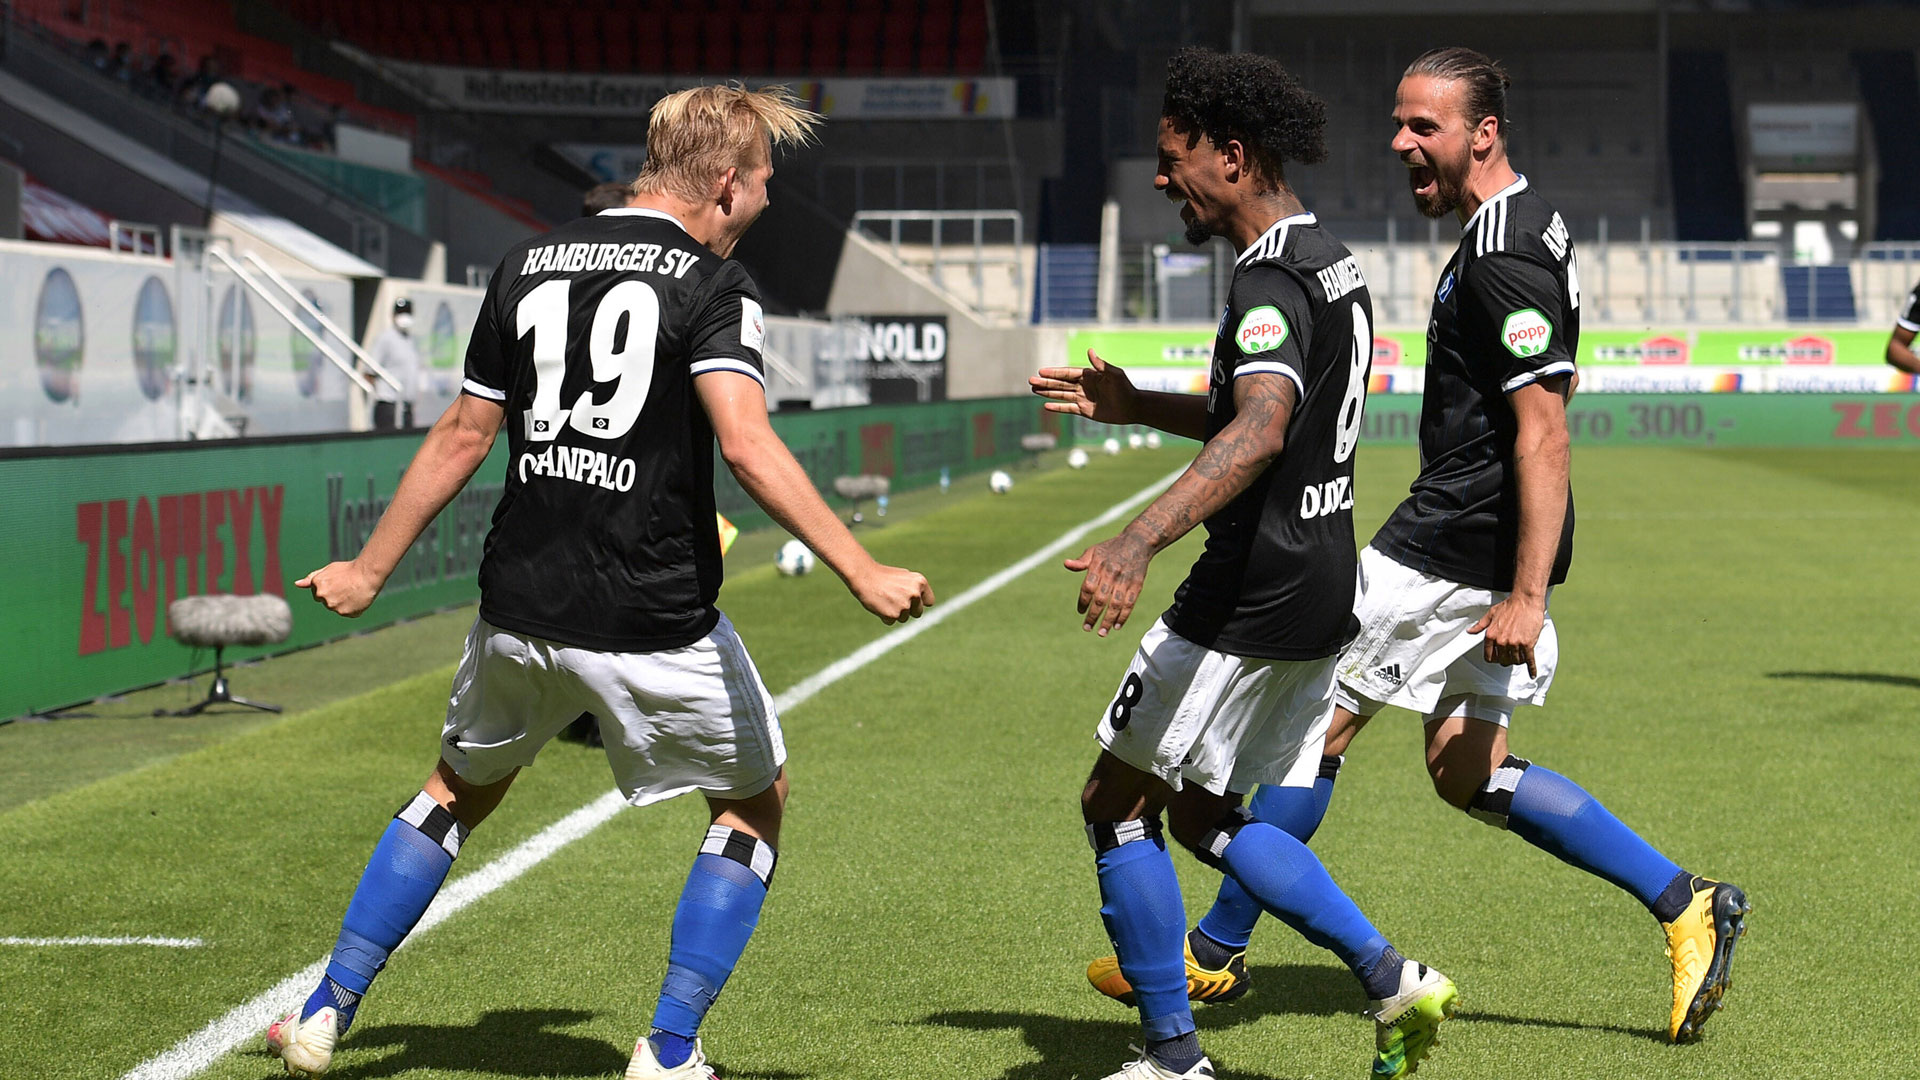 hsv hamburger sv vs sv sandhausen